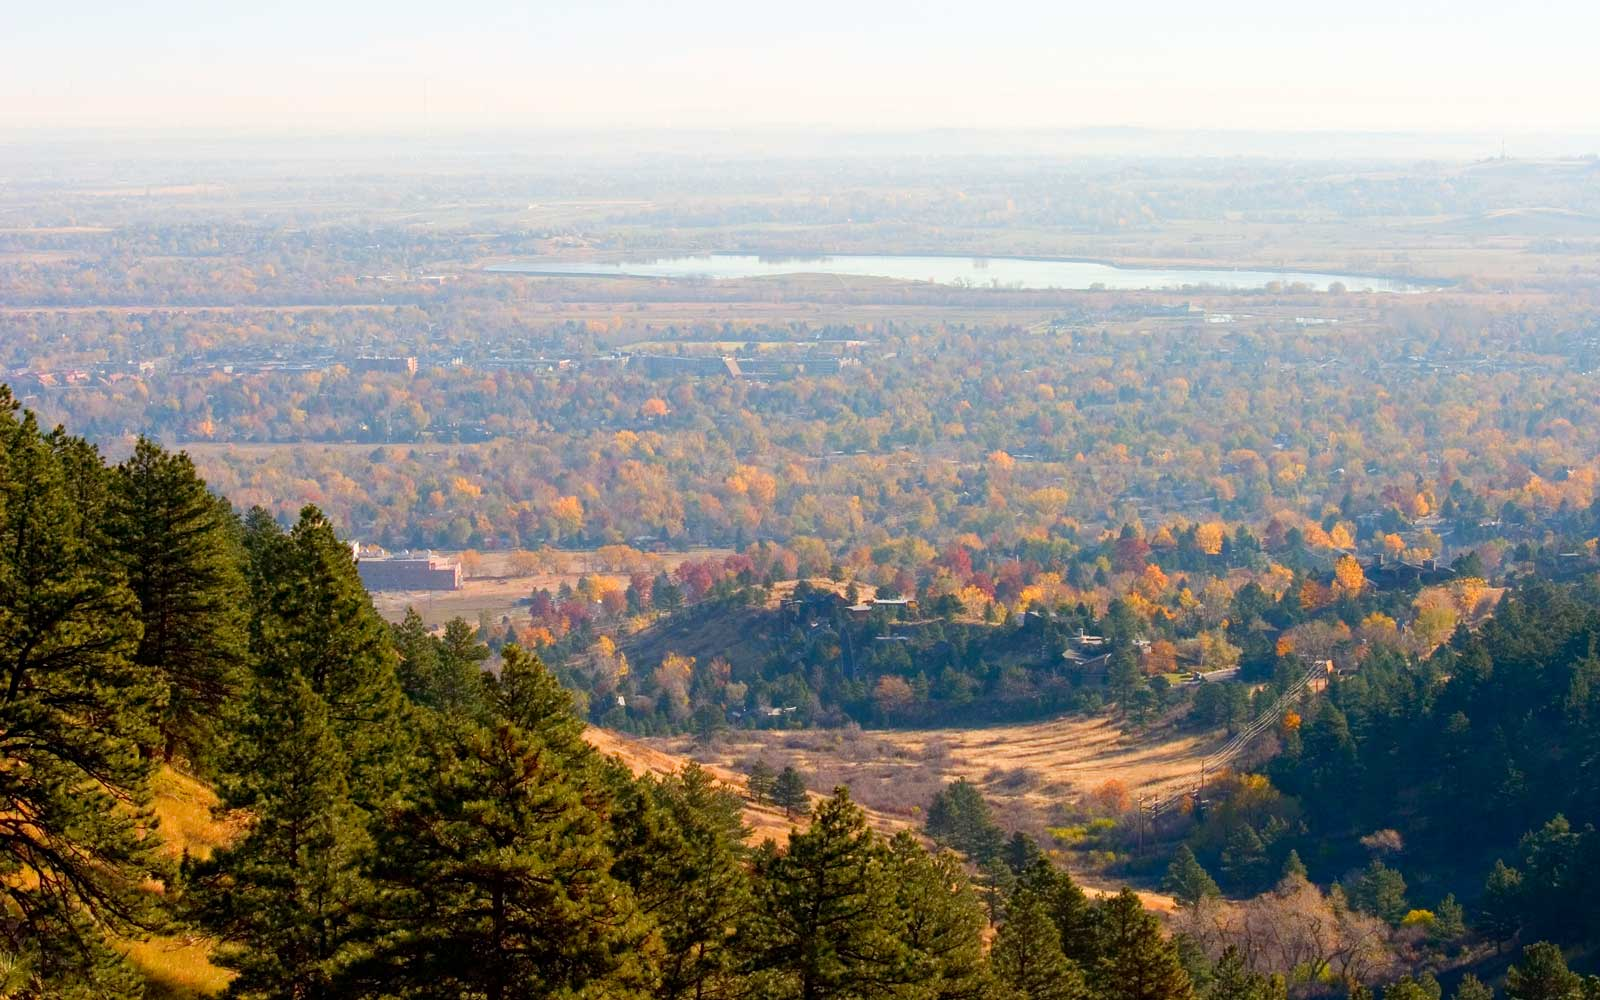 Aerial shot of Boulder Colorado from the Fern Canyon Trail